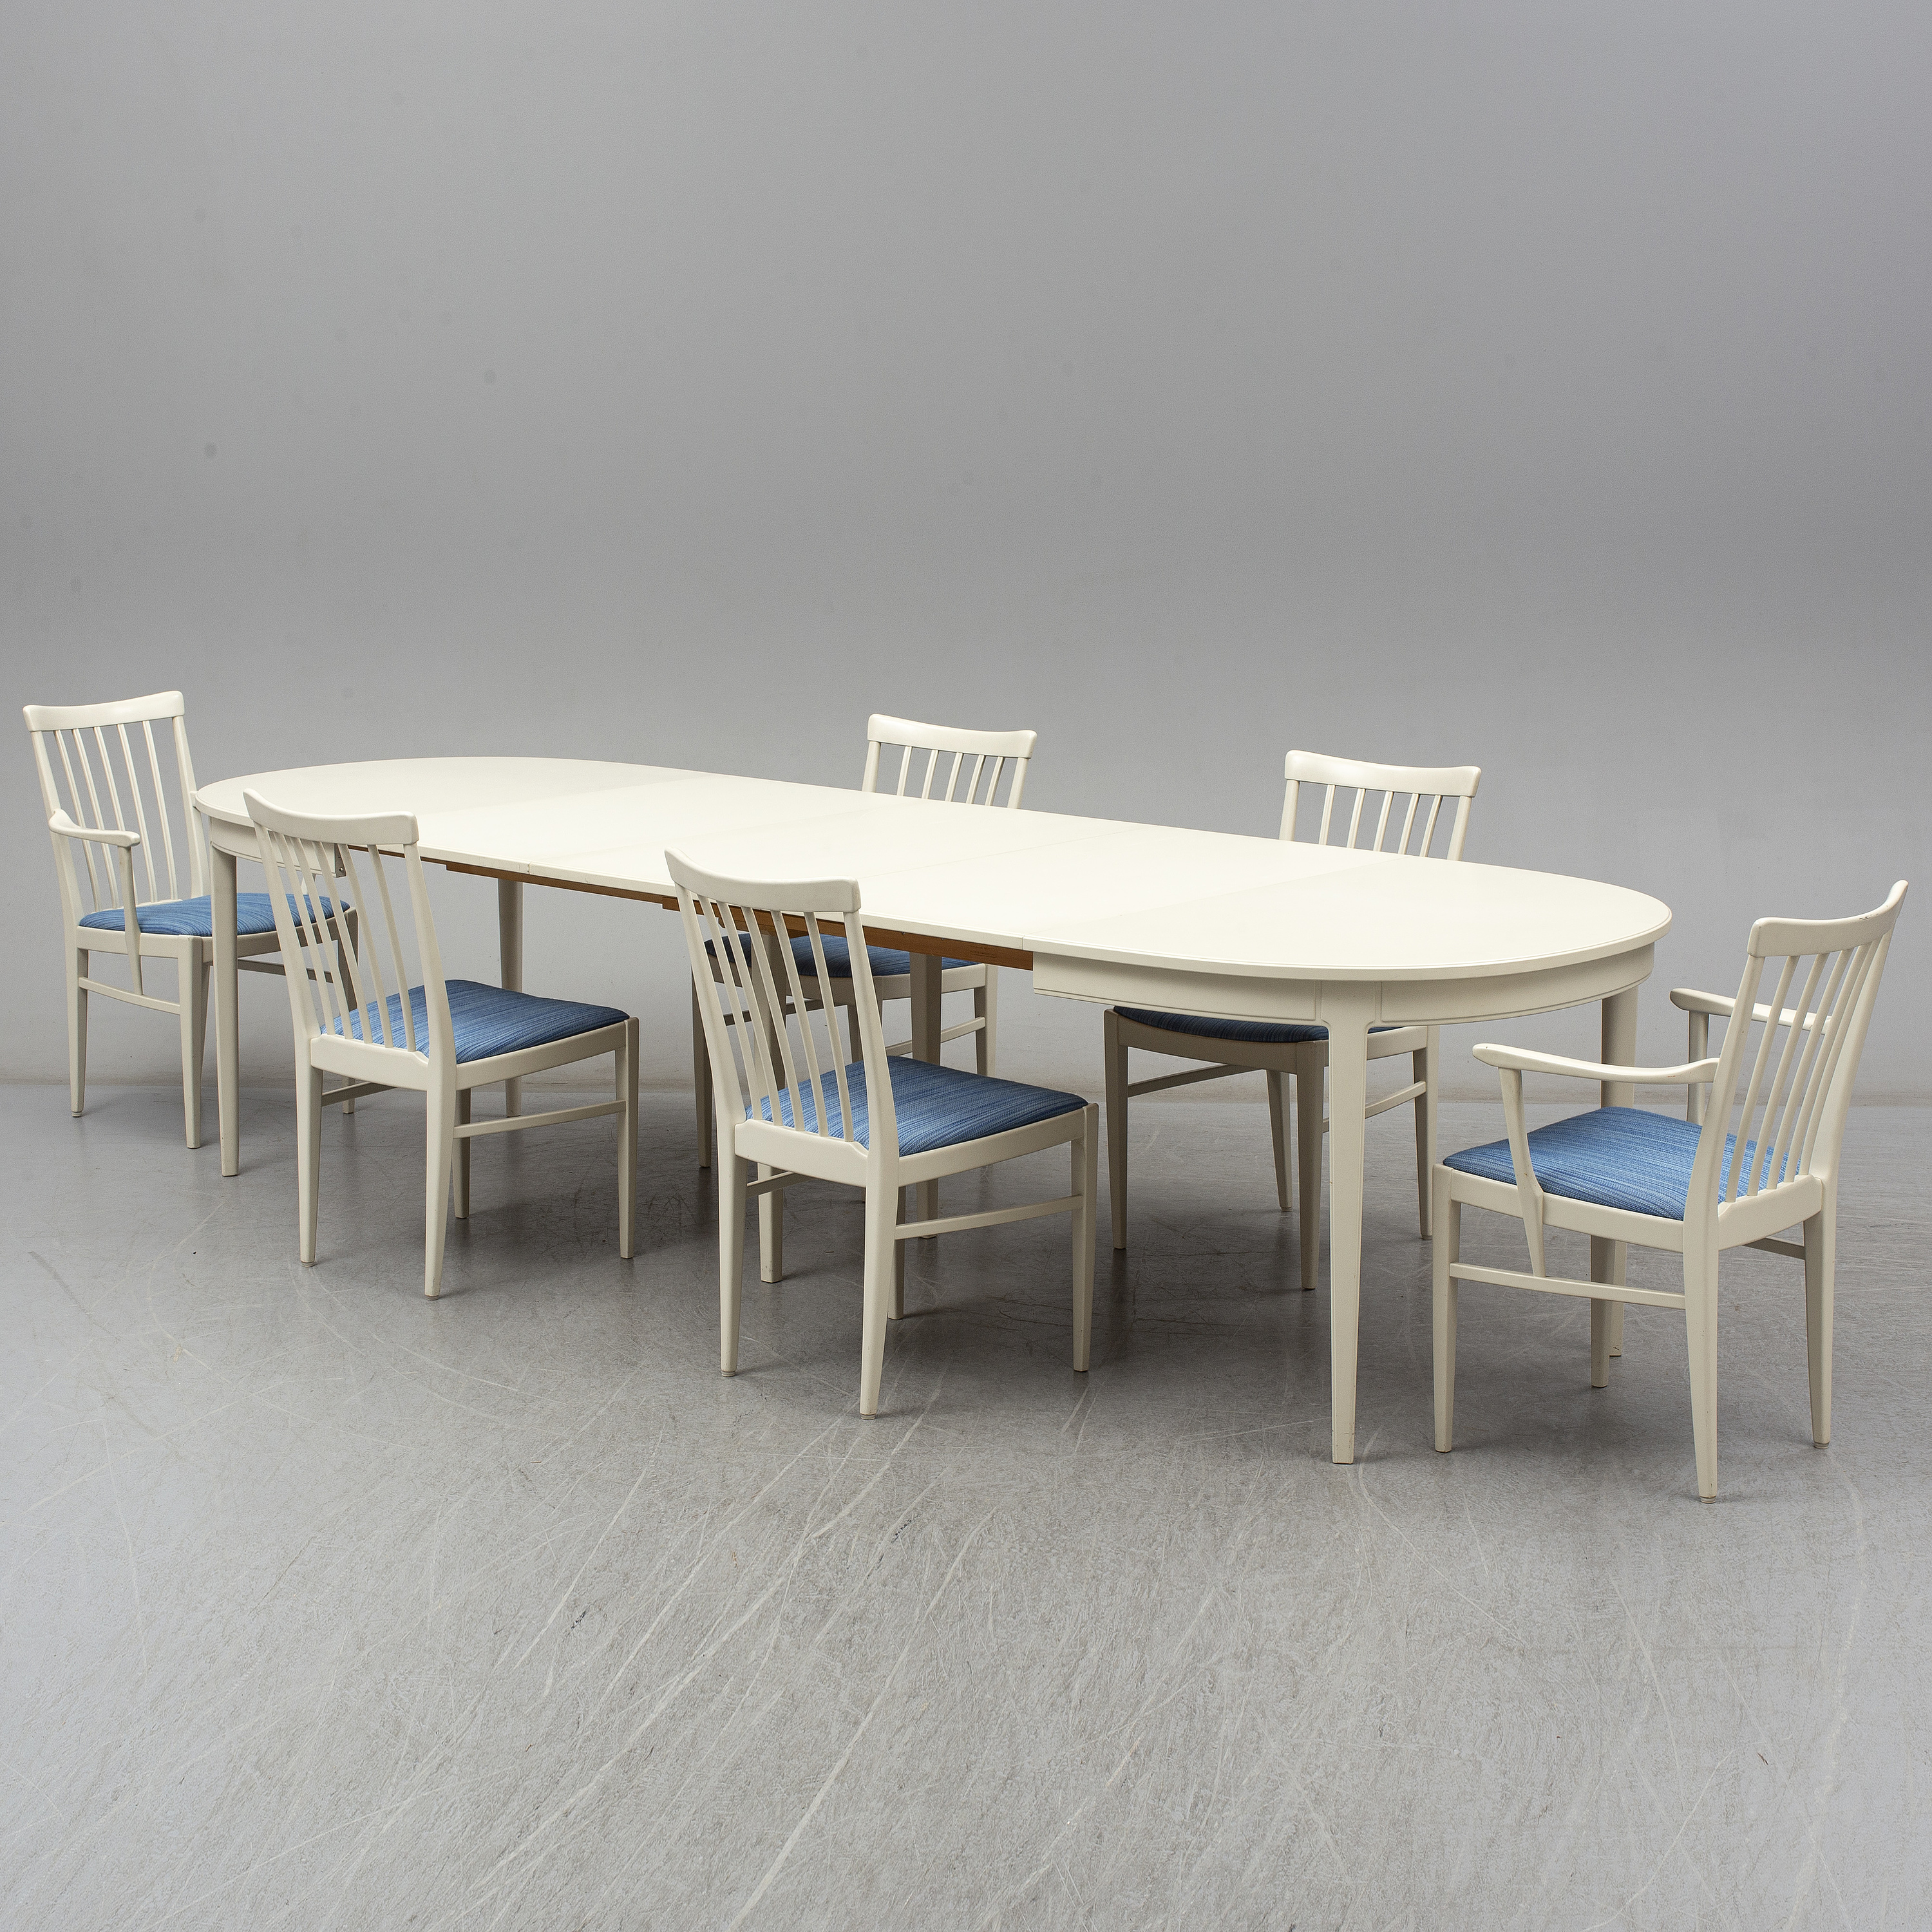 A Carl Malmsten Dining Table And Chairs In 7 Parts Bodafors 1960s 3 Leaves Included Bukowskis